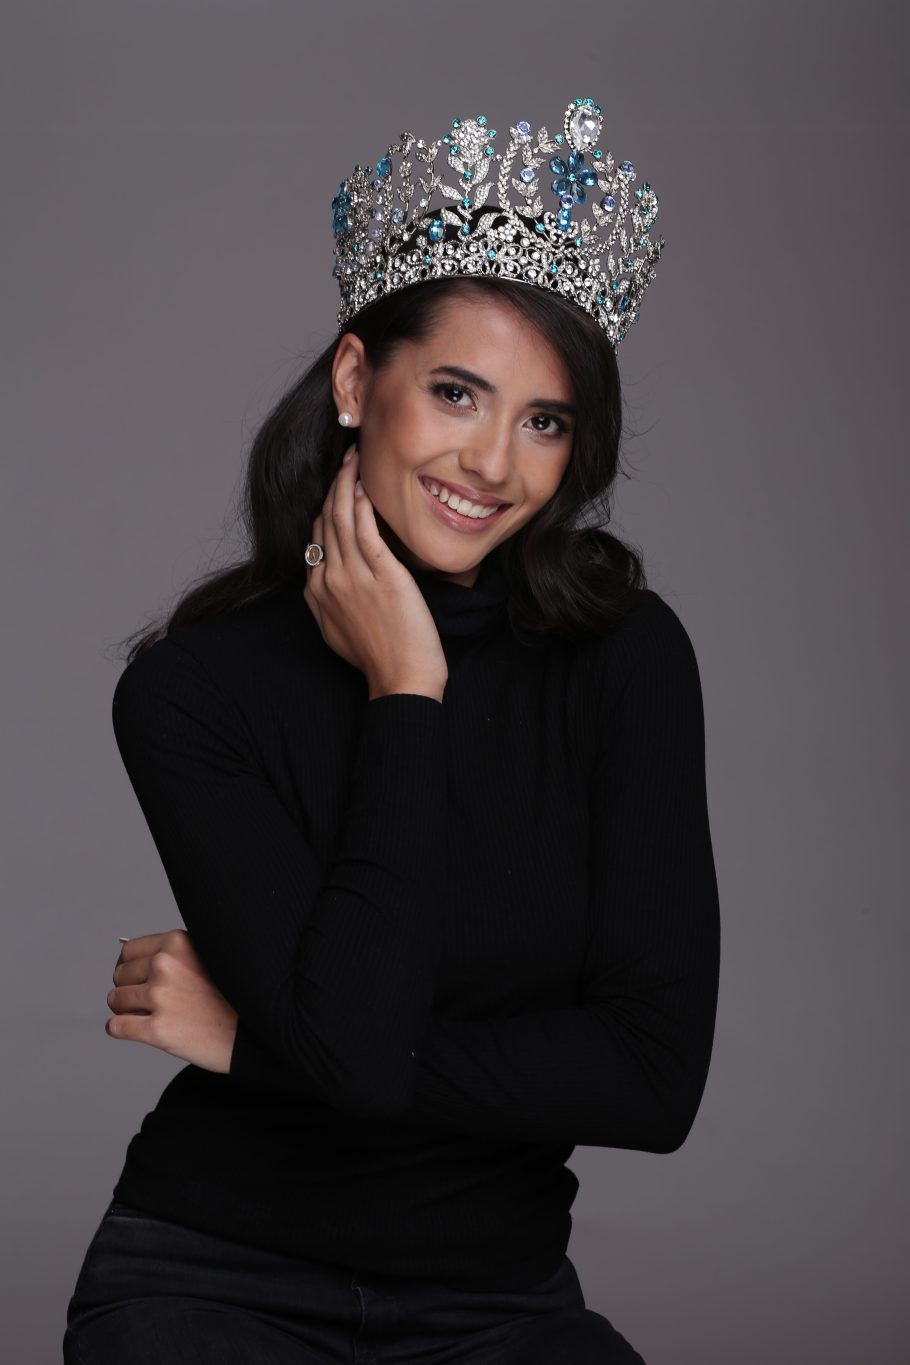 Exclusive Interview: Getting Candid with Anntonia Porsild, Miss Supranational 2018